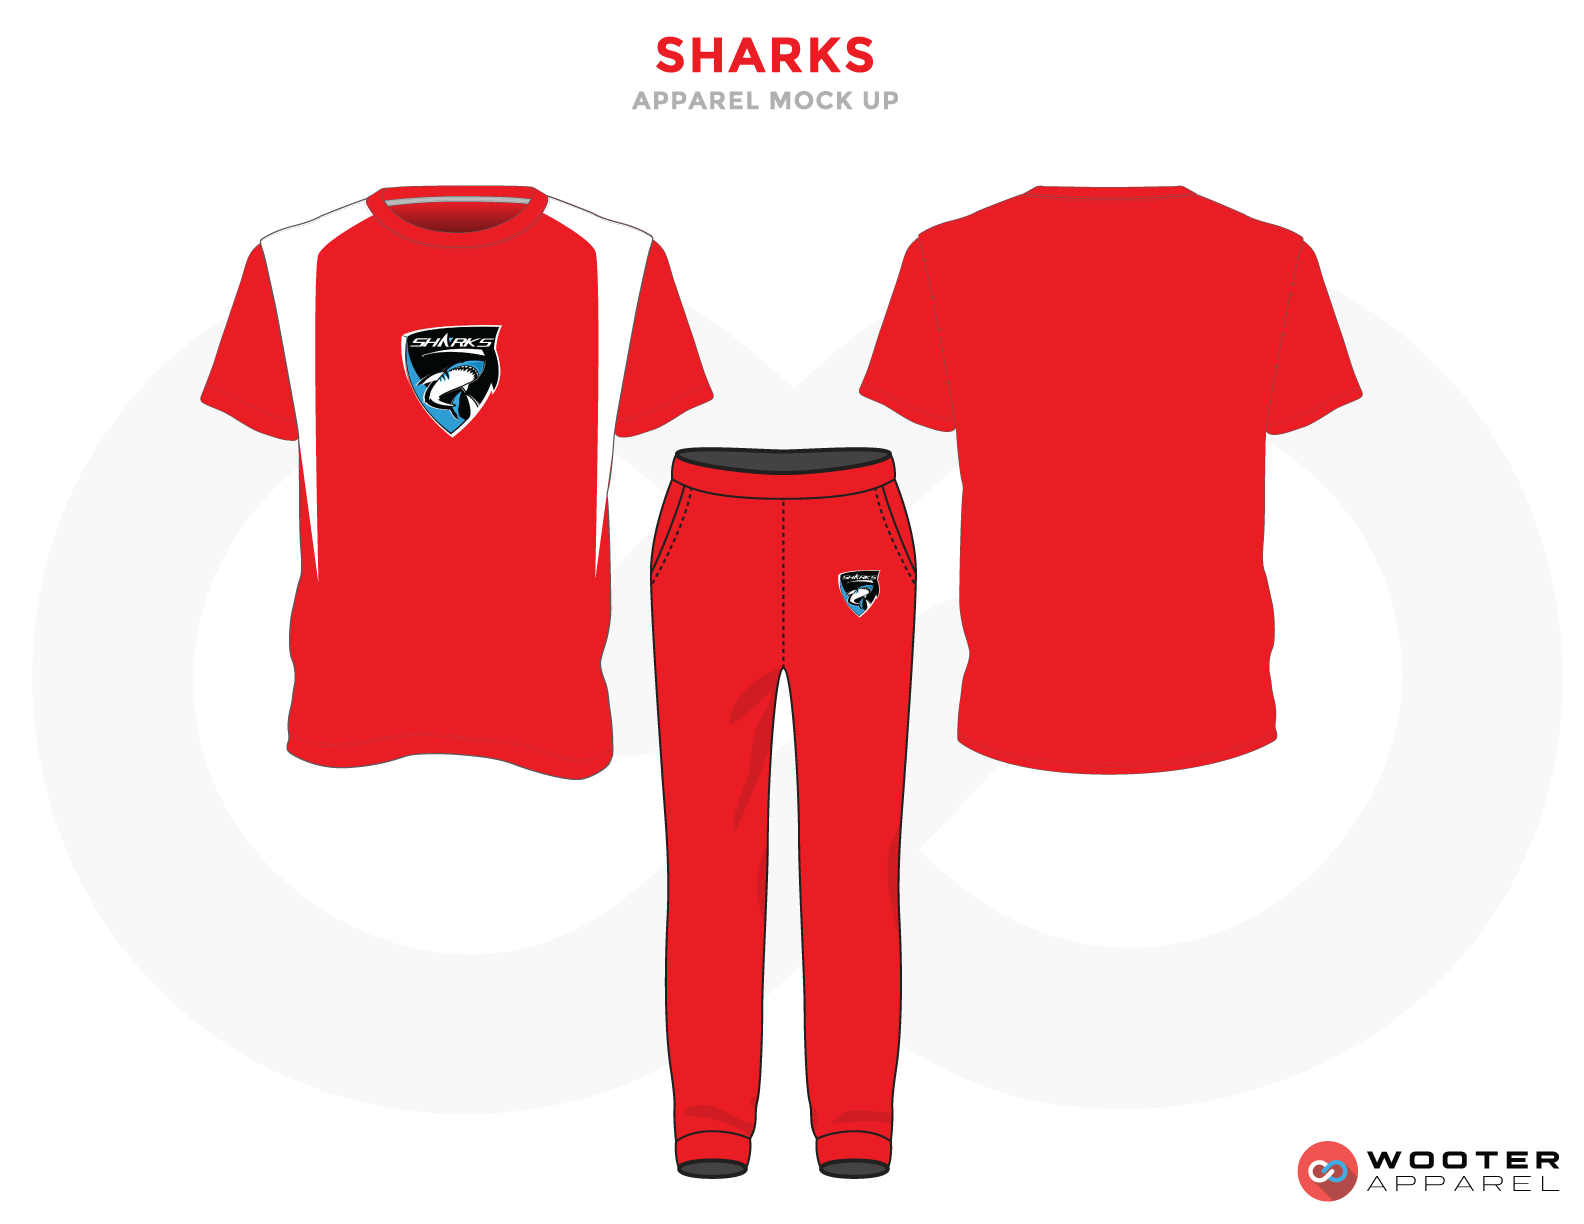 SHARKS White Red Blue and Black Baseball Uniforms, Jersey and Pants